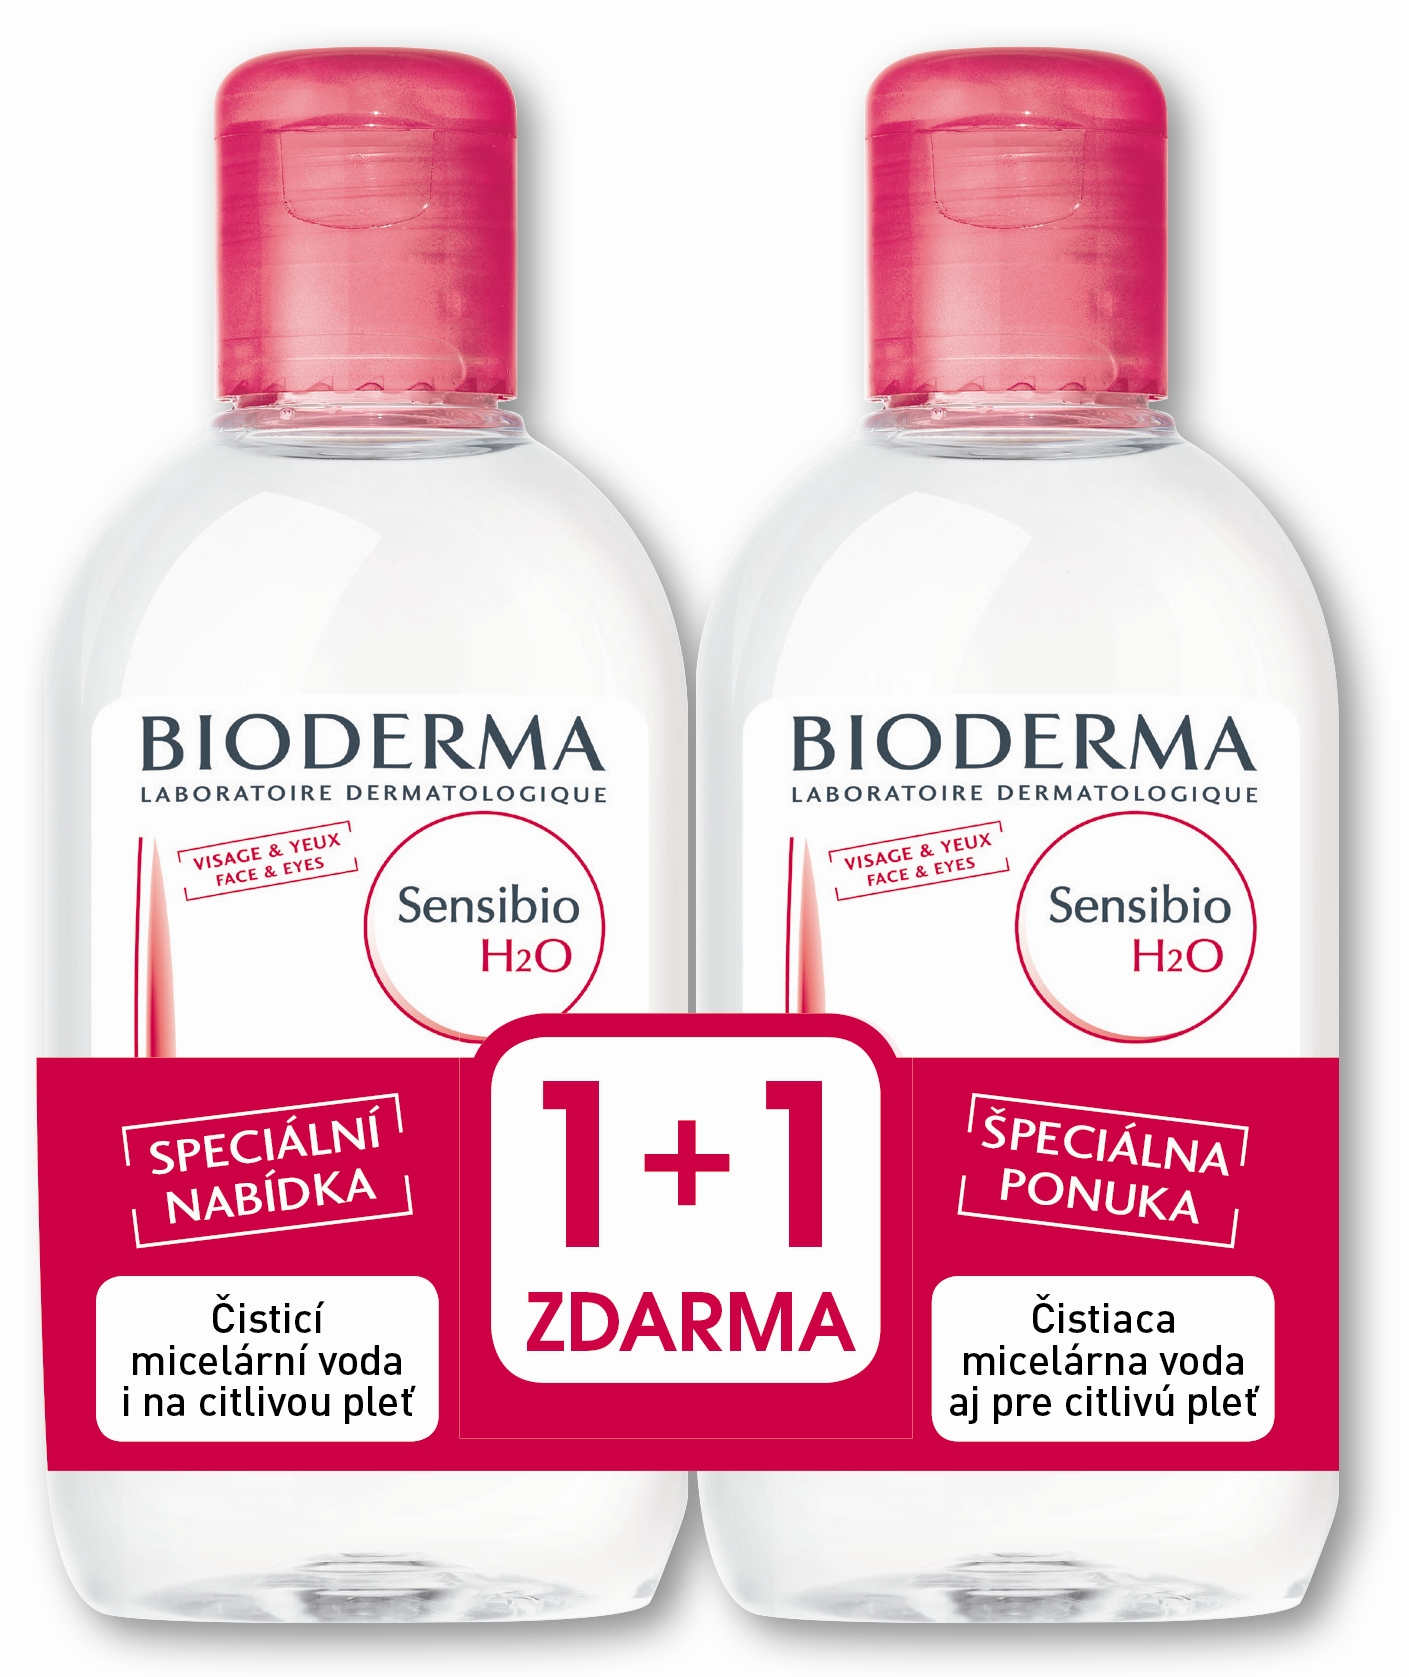 BIODERMA Sensibio H2O 250 ml 1 plus 1 ZDARMA